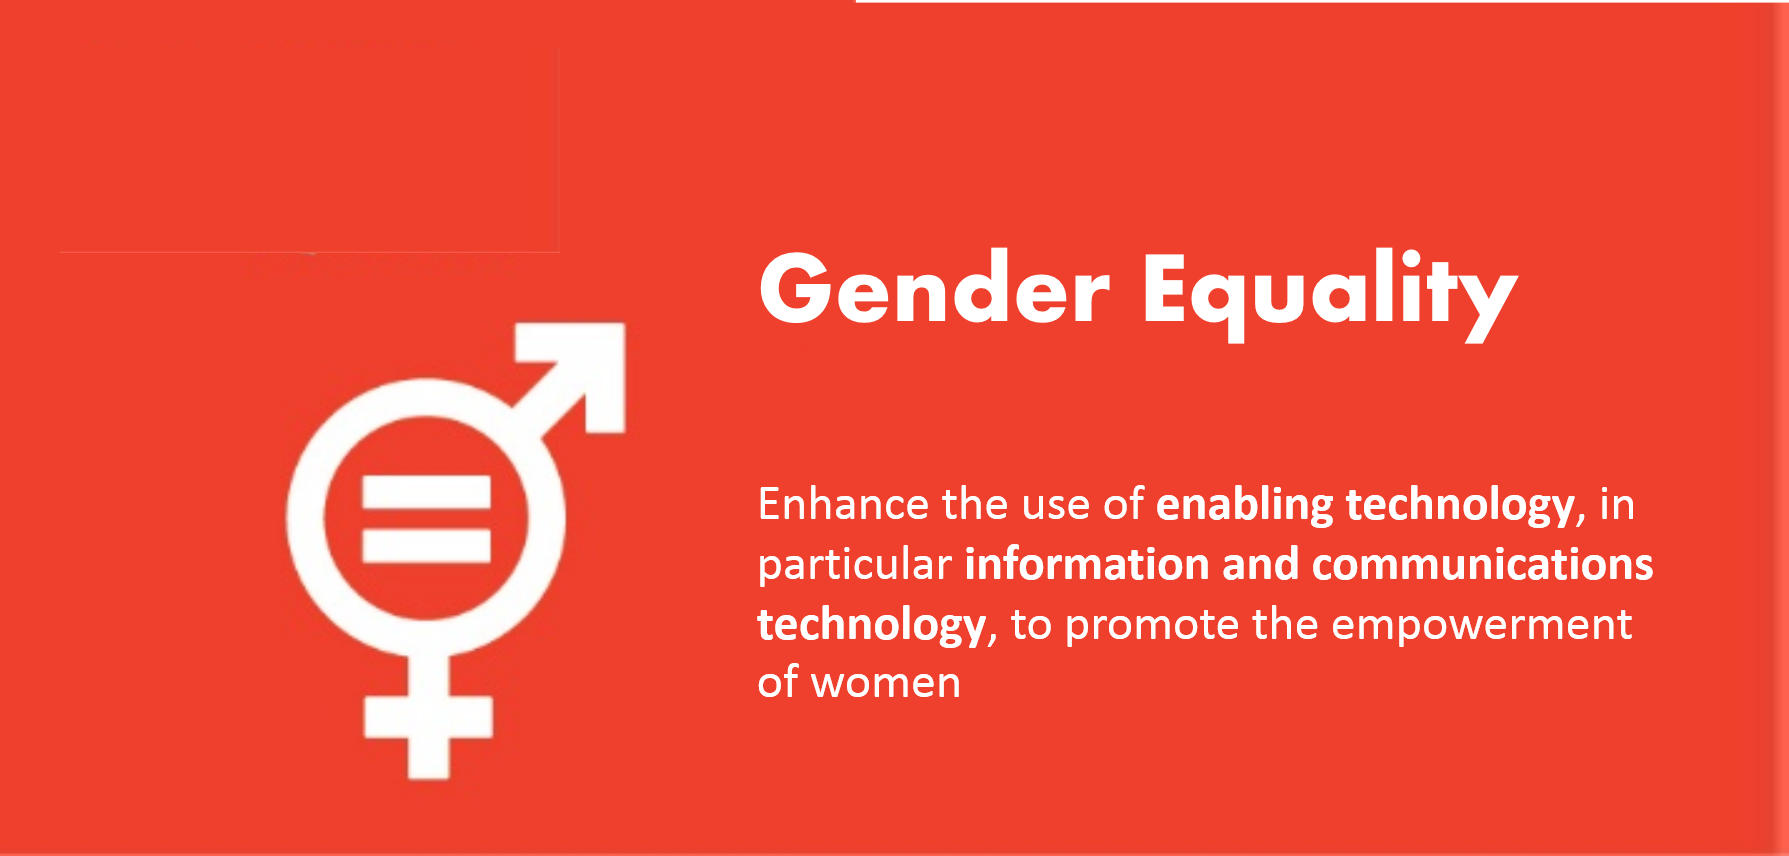 """What Must Change?"" For More Gender Equality Online"